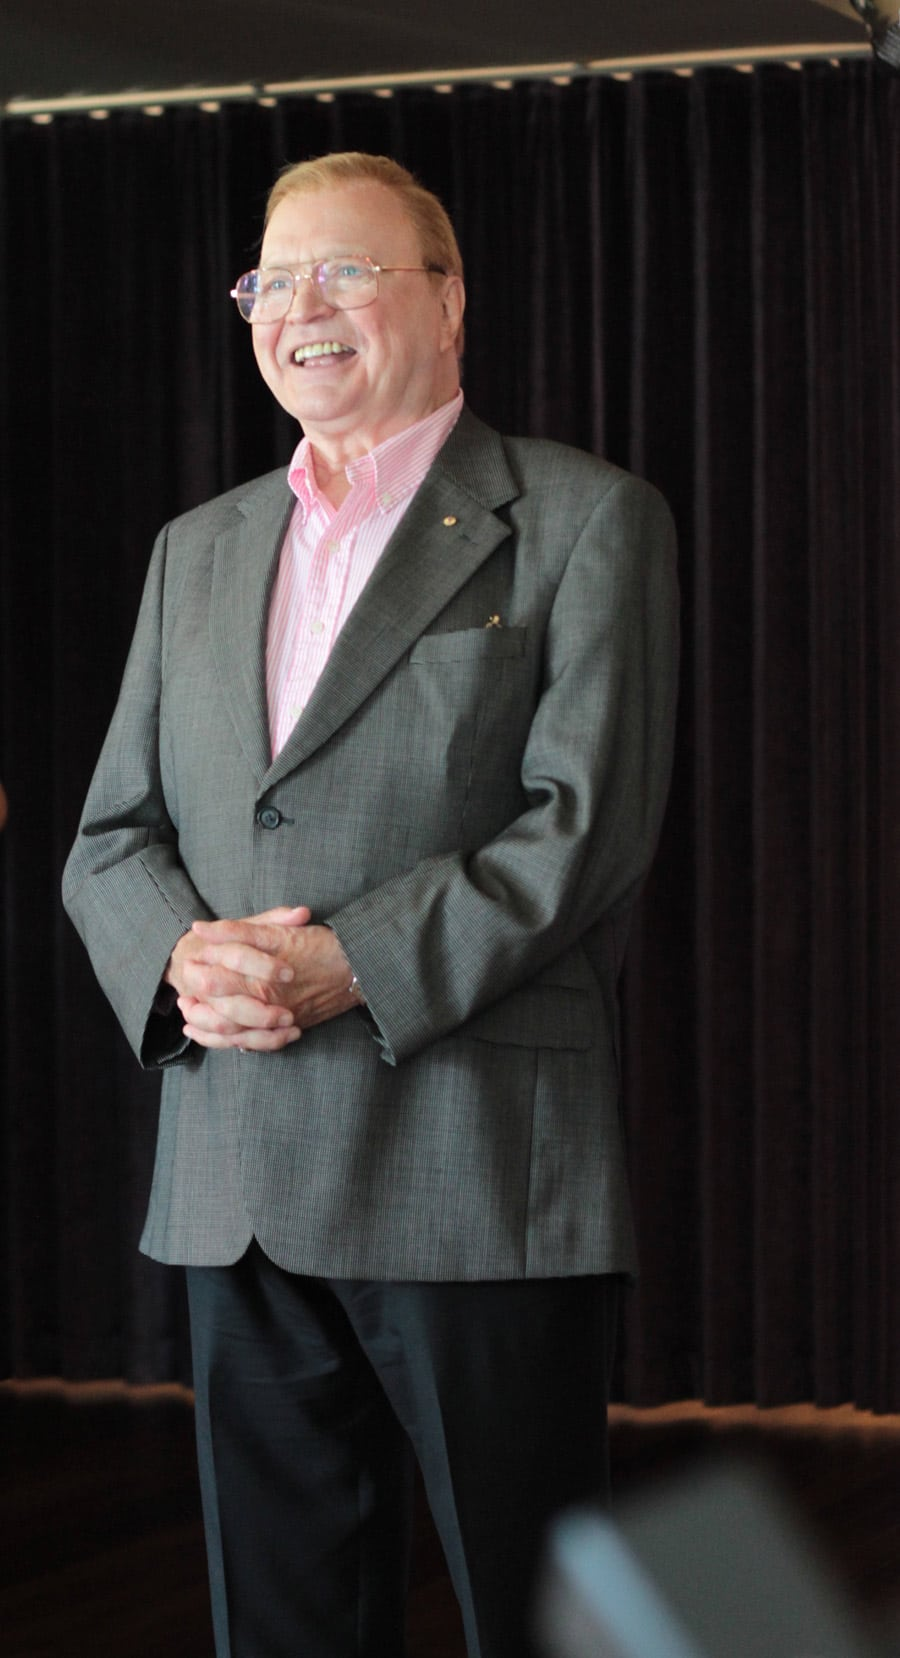 Bert Newton at the launch of Grease. Image by Erin James